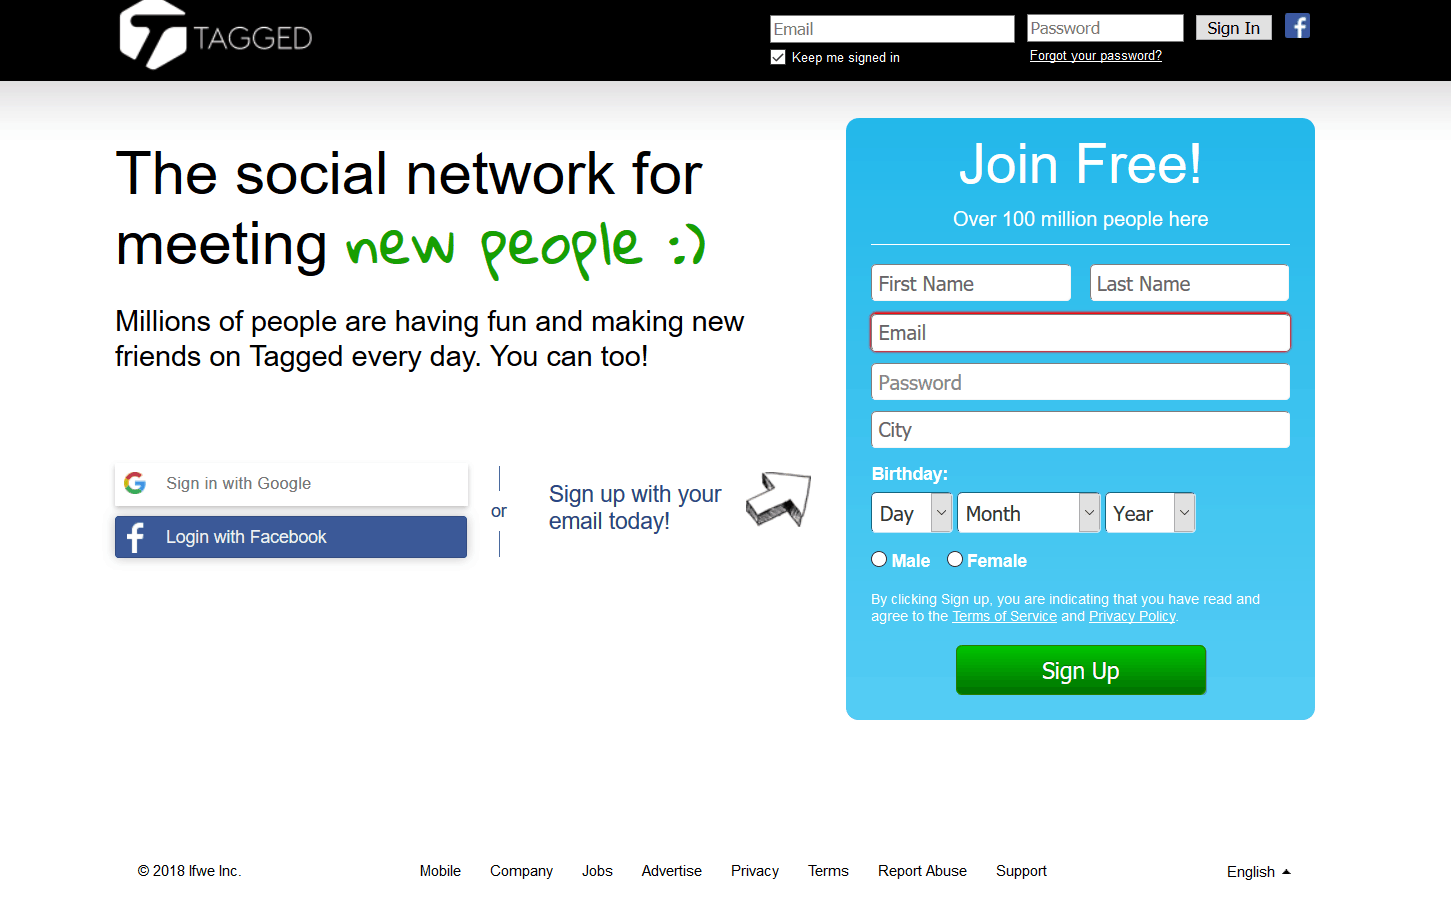 Tagged is one of many social media platforms you haven't heard about.